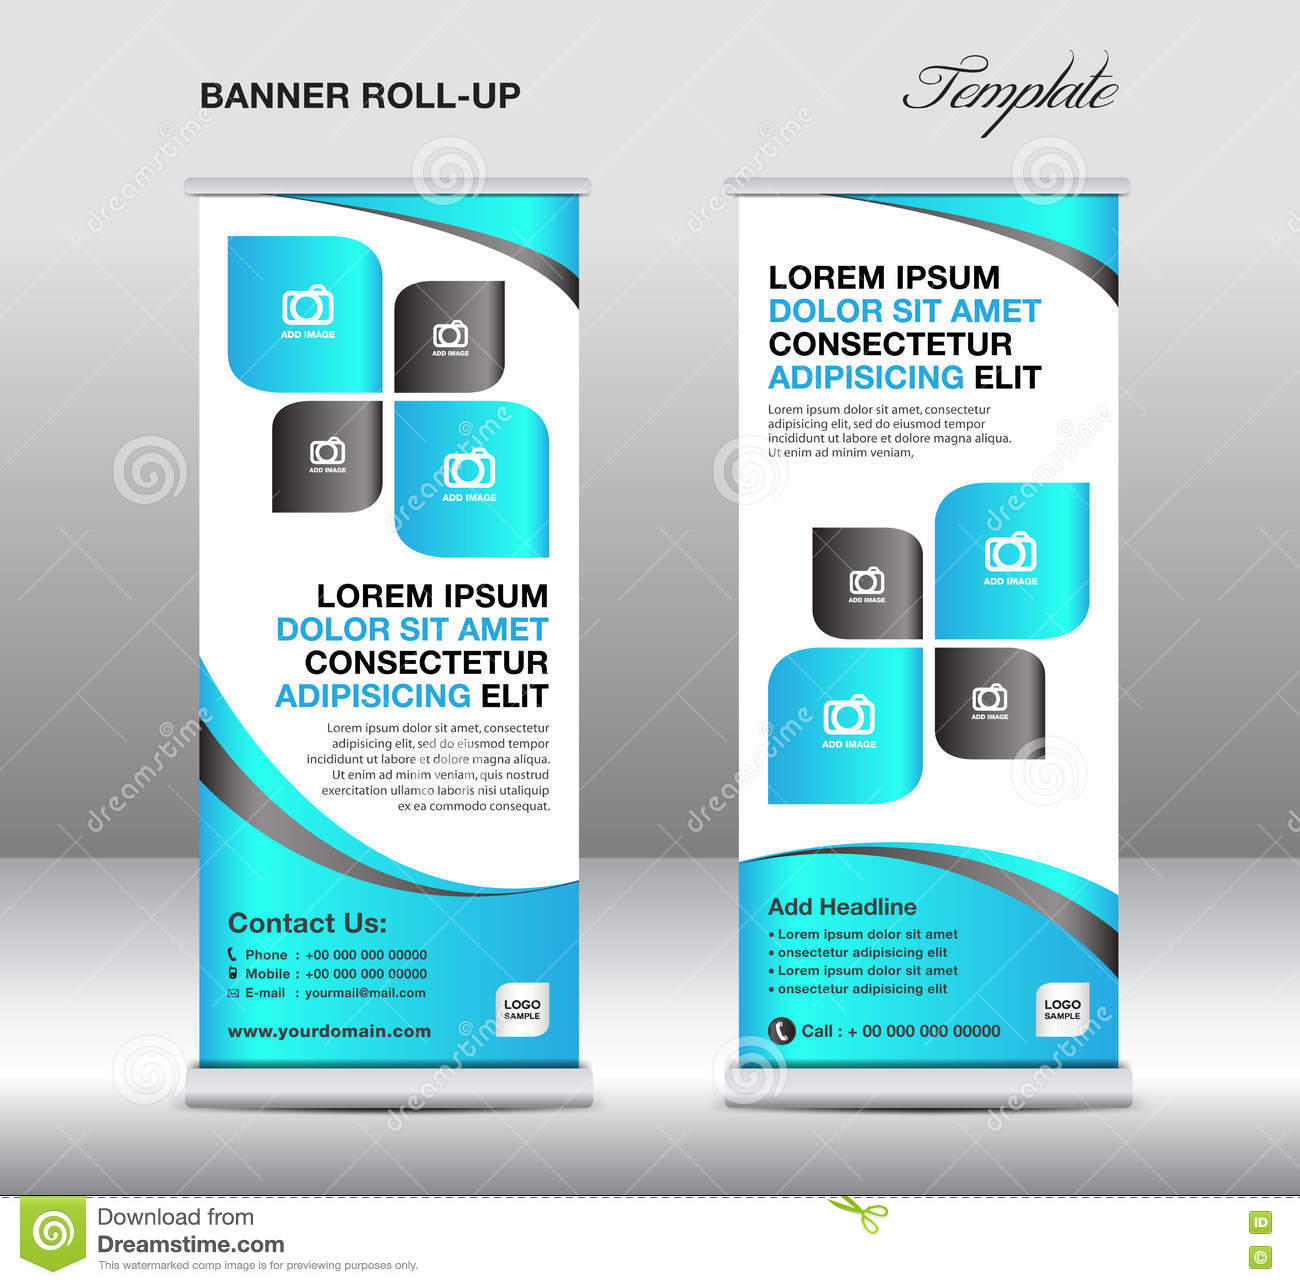 Roll up banner stand template stand designbanner templateblue roll up banner stand template stand designbanner templateblue pronofoot35fo Choice Image